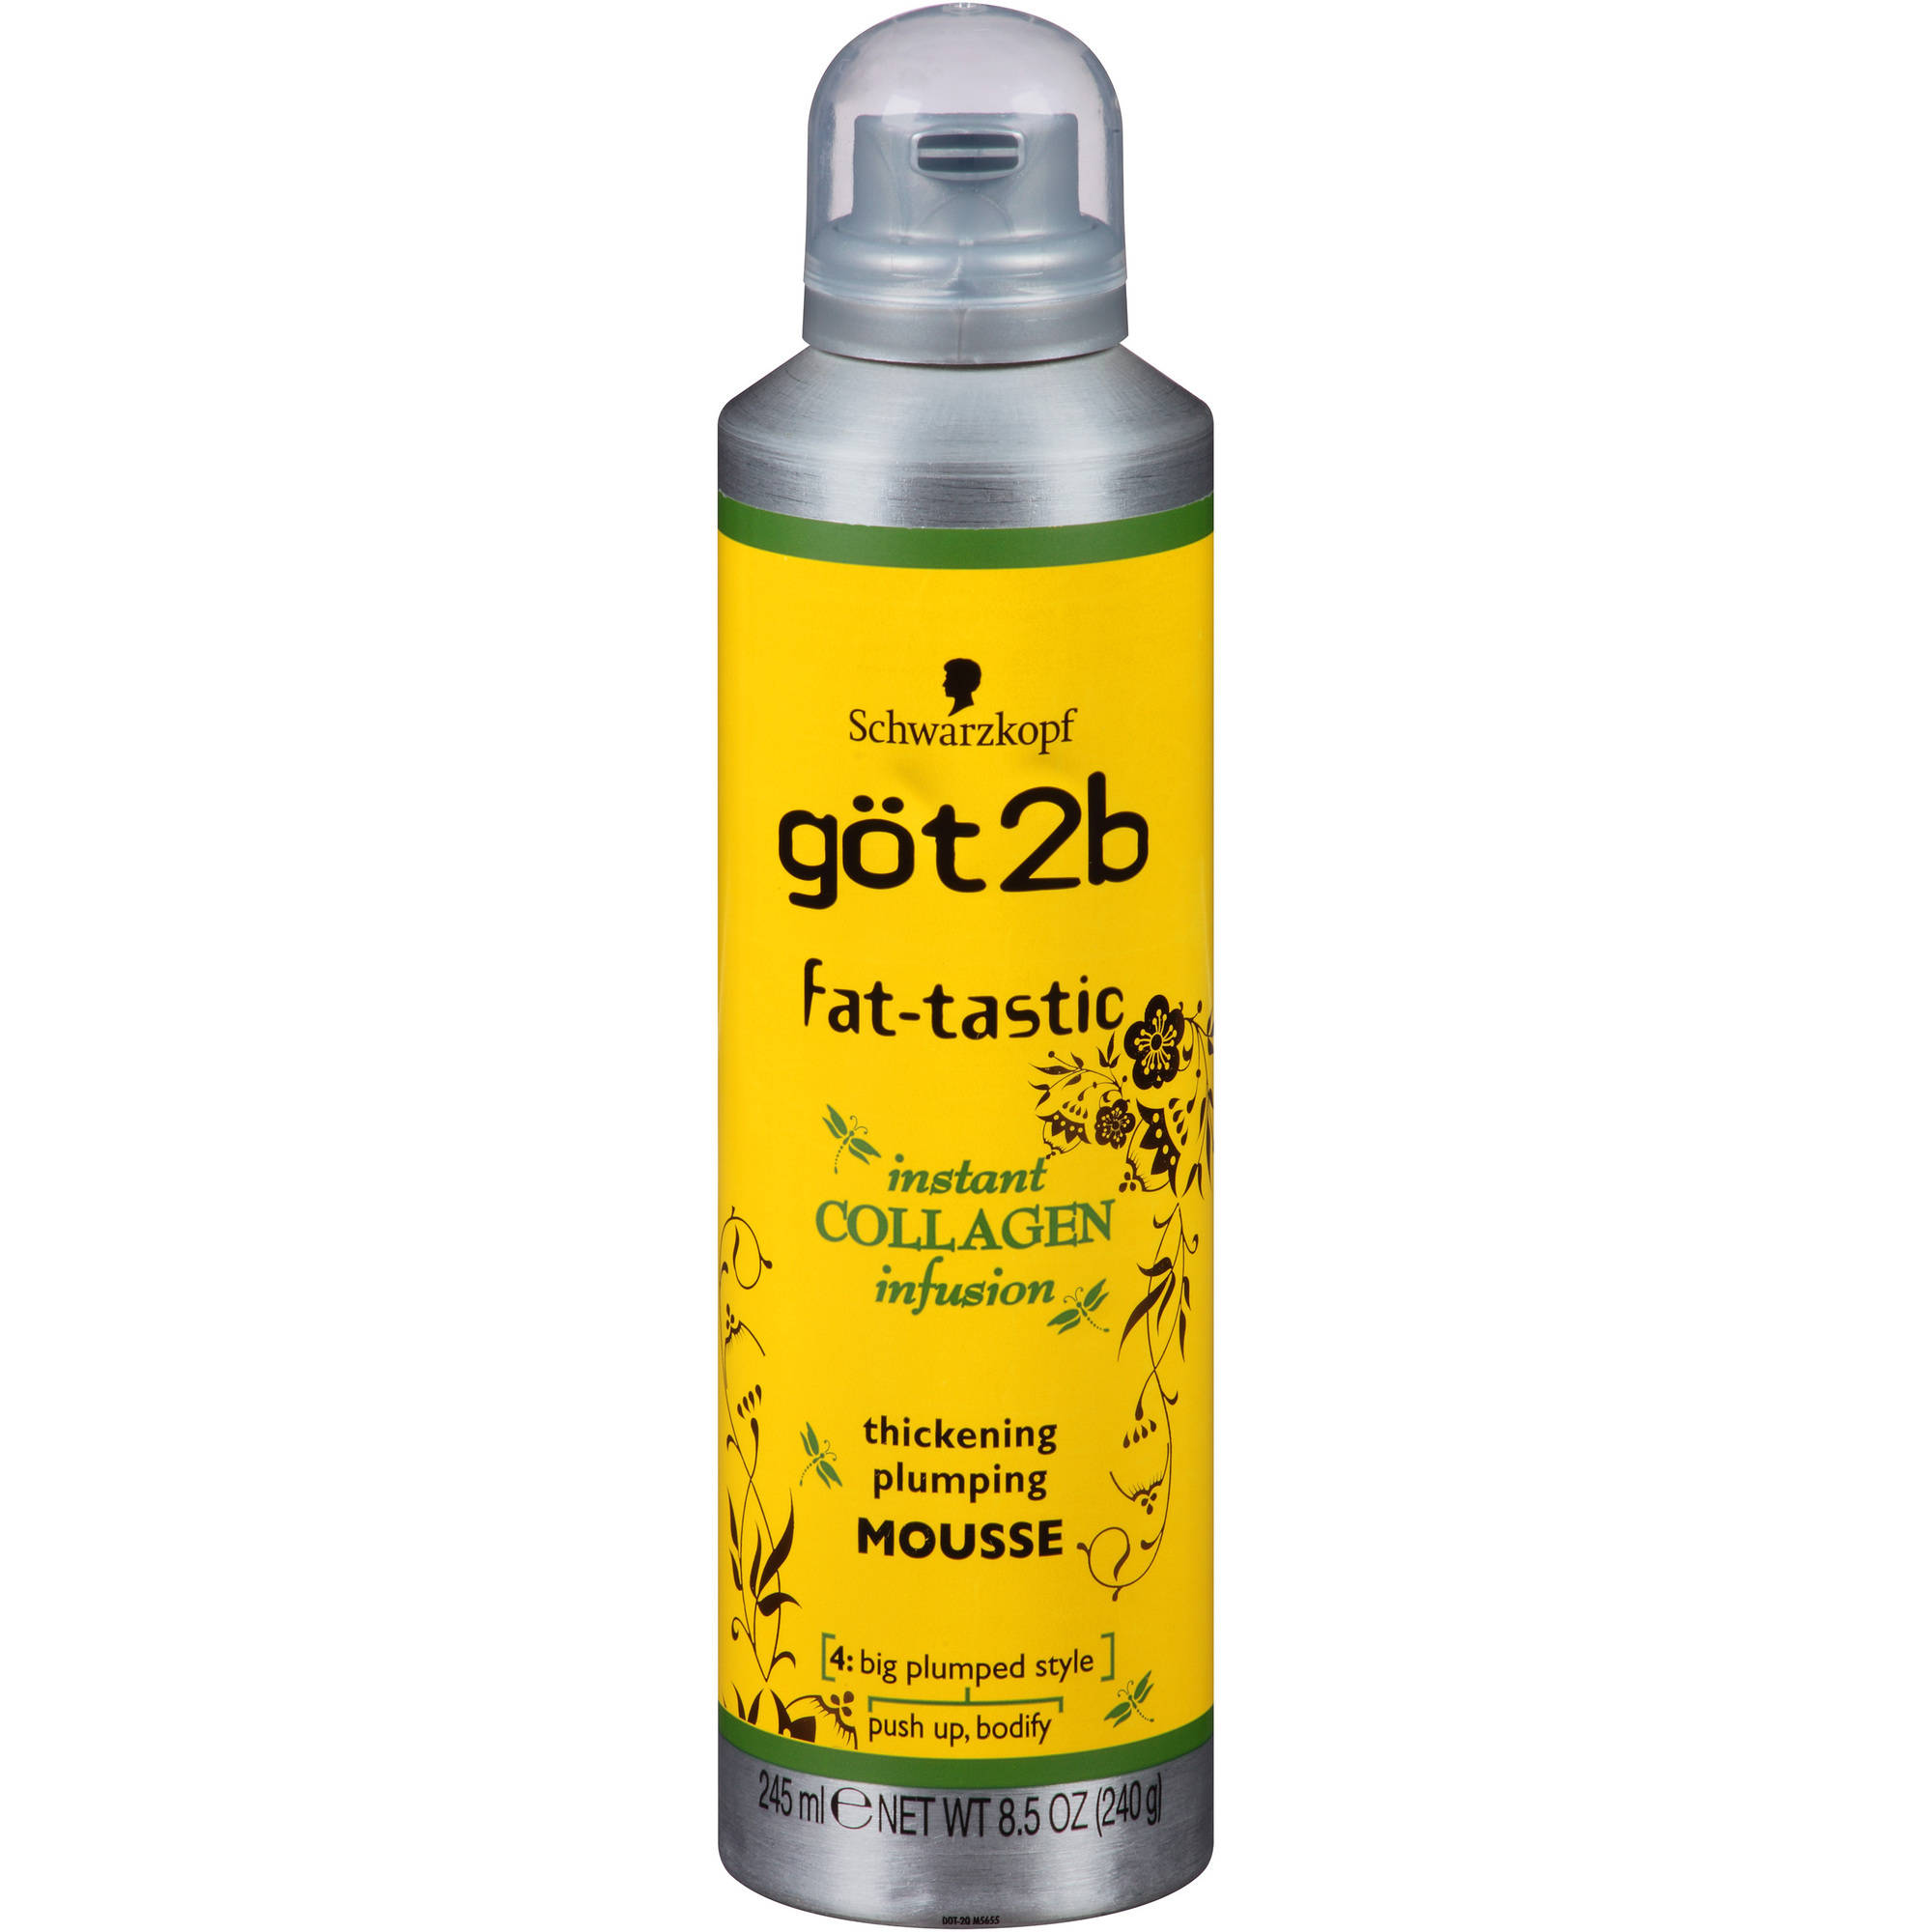 got2b Fat-Tastic Thickening Plumping Mousse, 8.5 oz